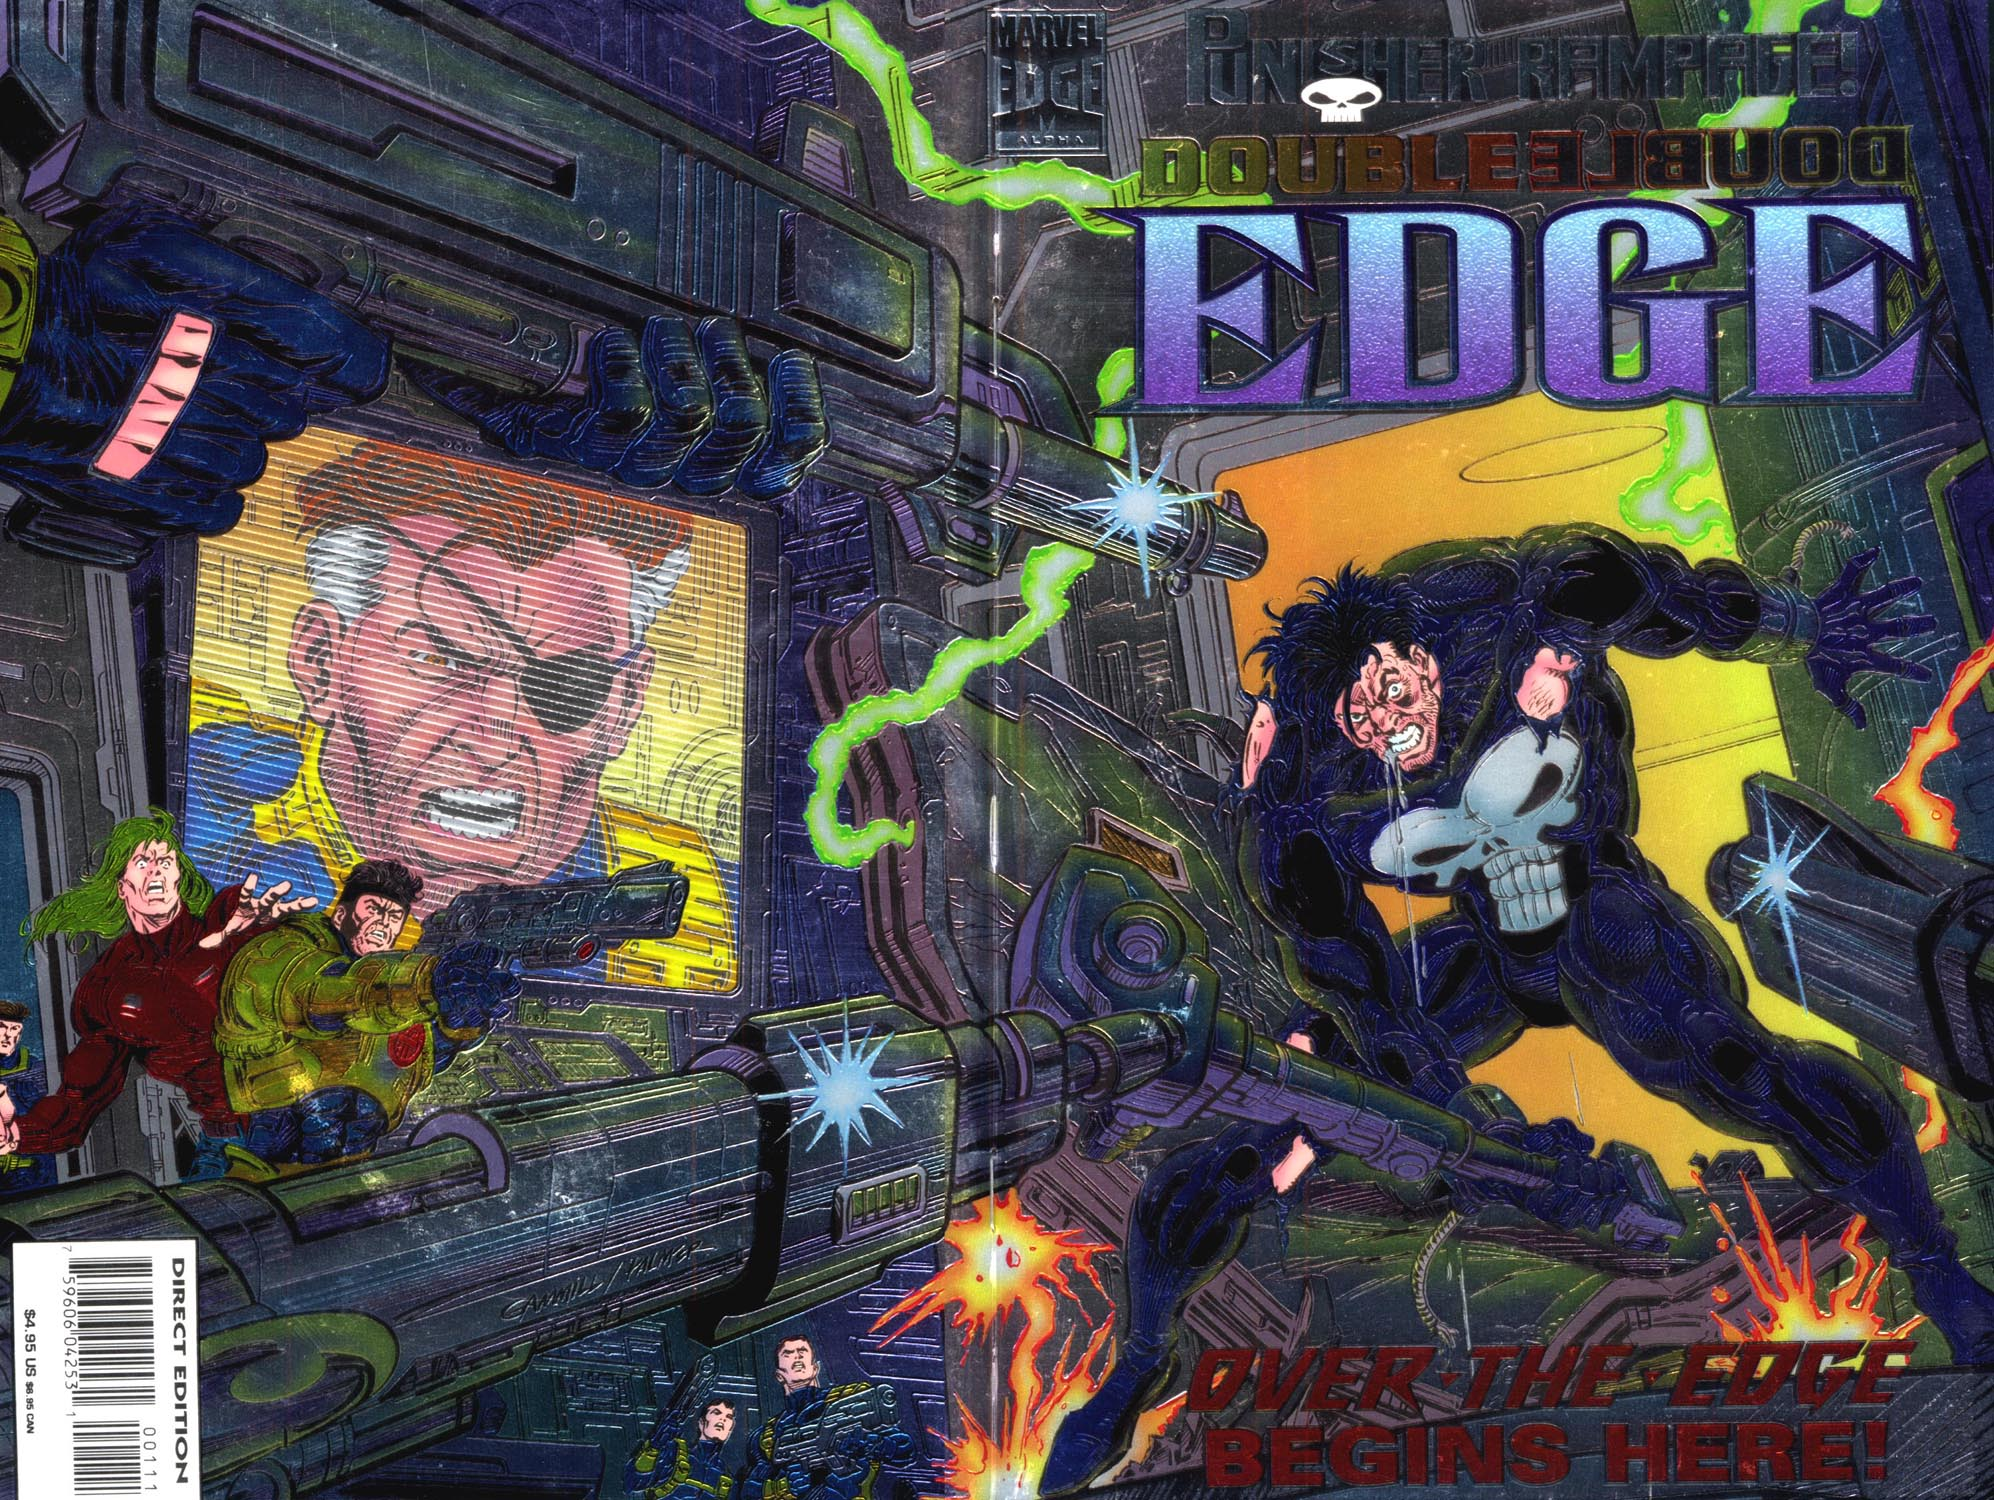 Read online Double Edge comic -  Issue # Issue Alpha - 1